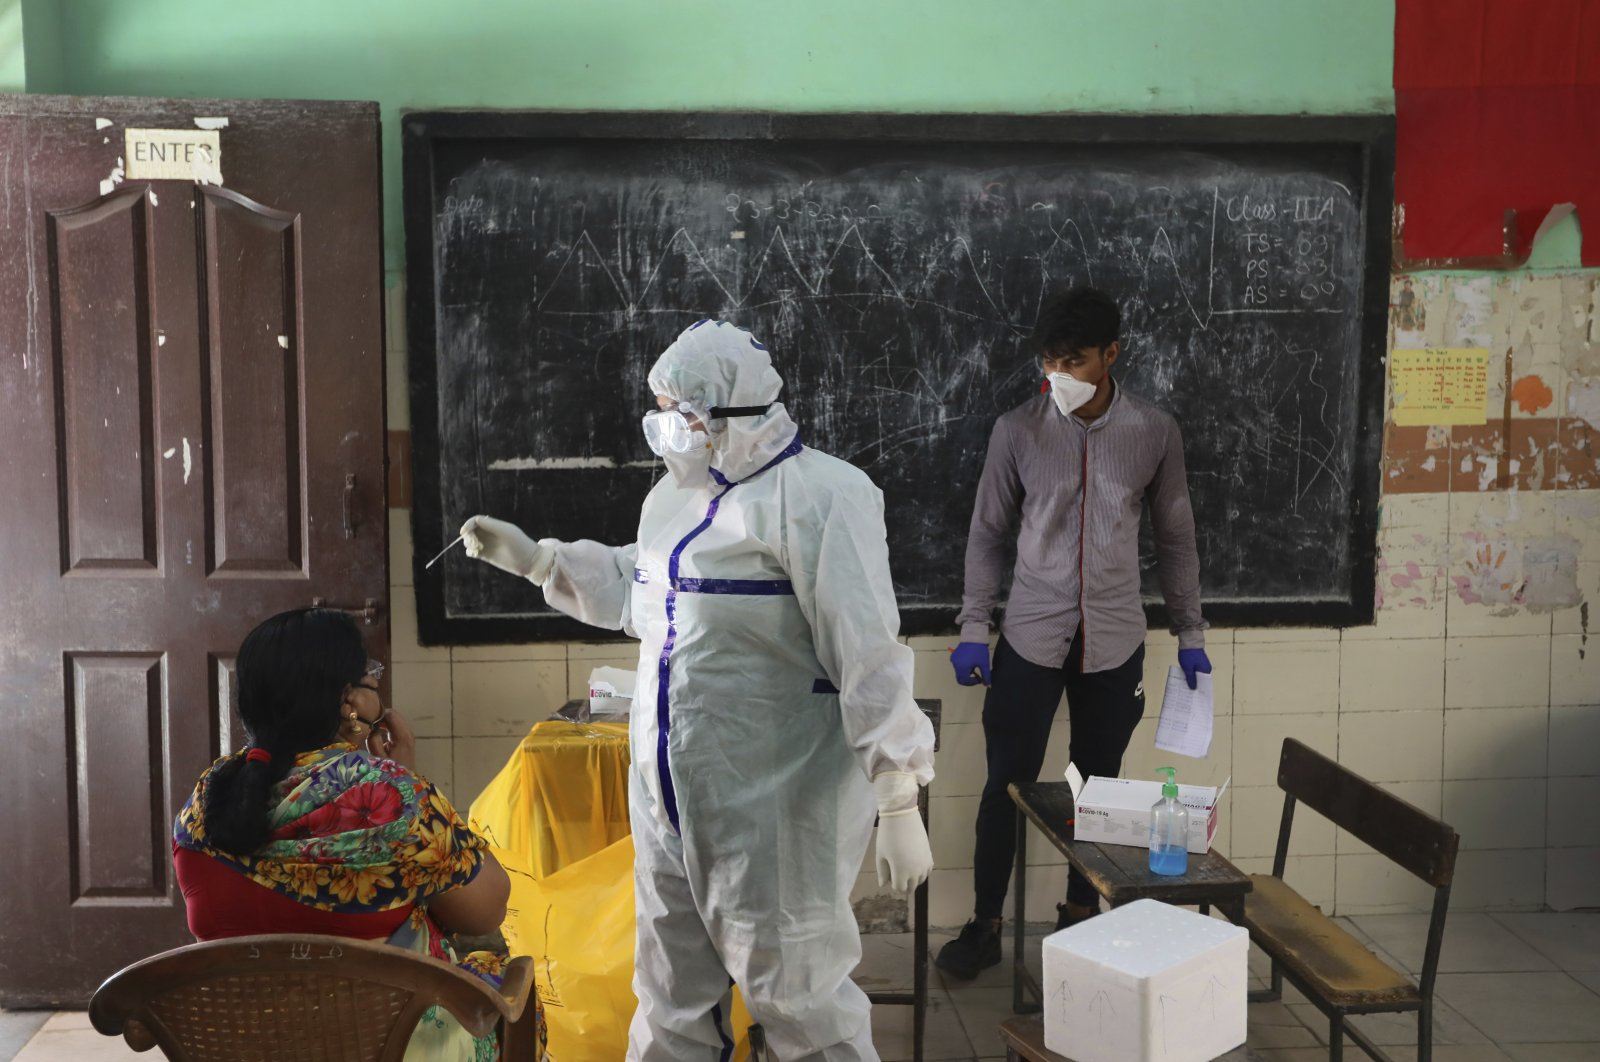 A health worker takes a swab sample of a woman for a COVID-19 test in New Delhi, India, June 24, 2020. (AP Photo)